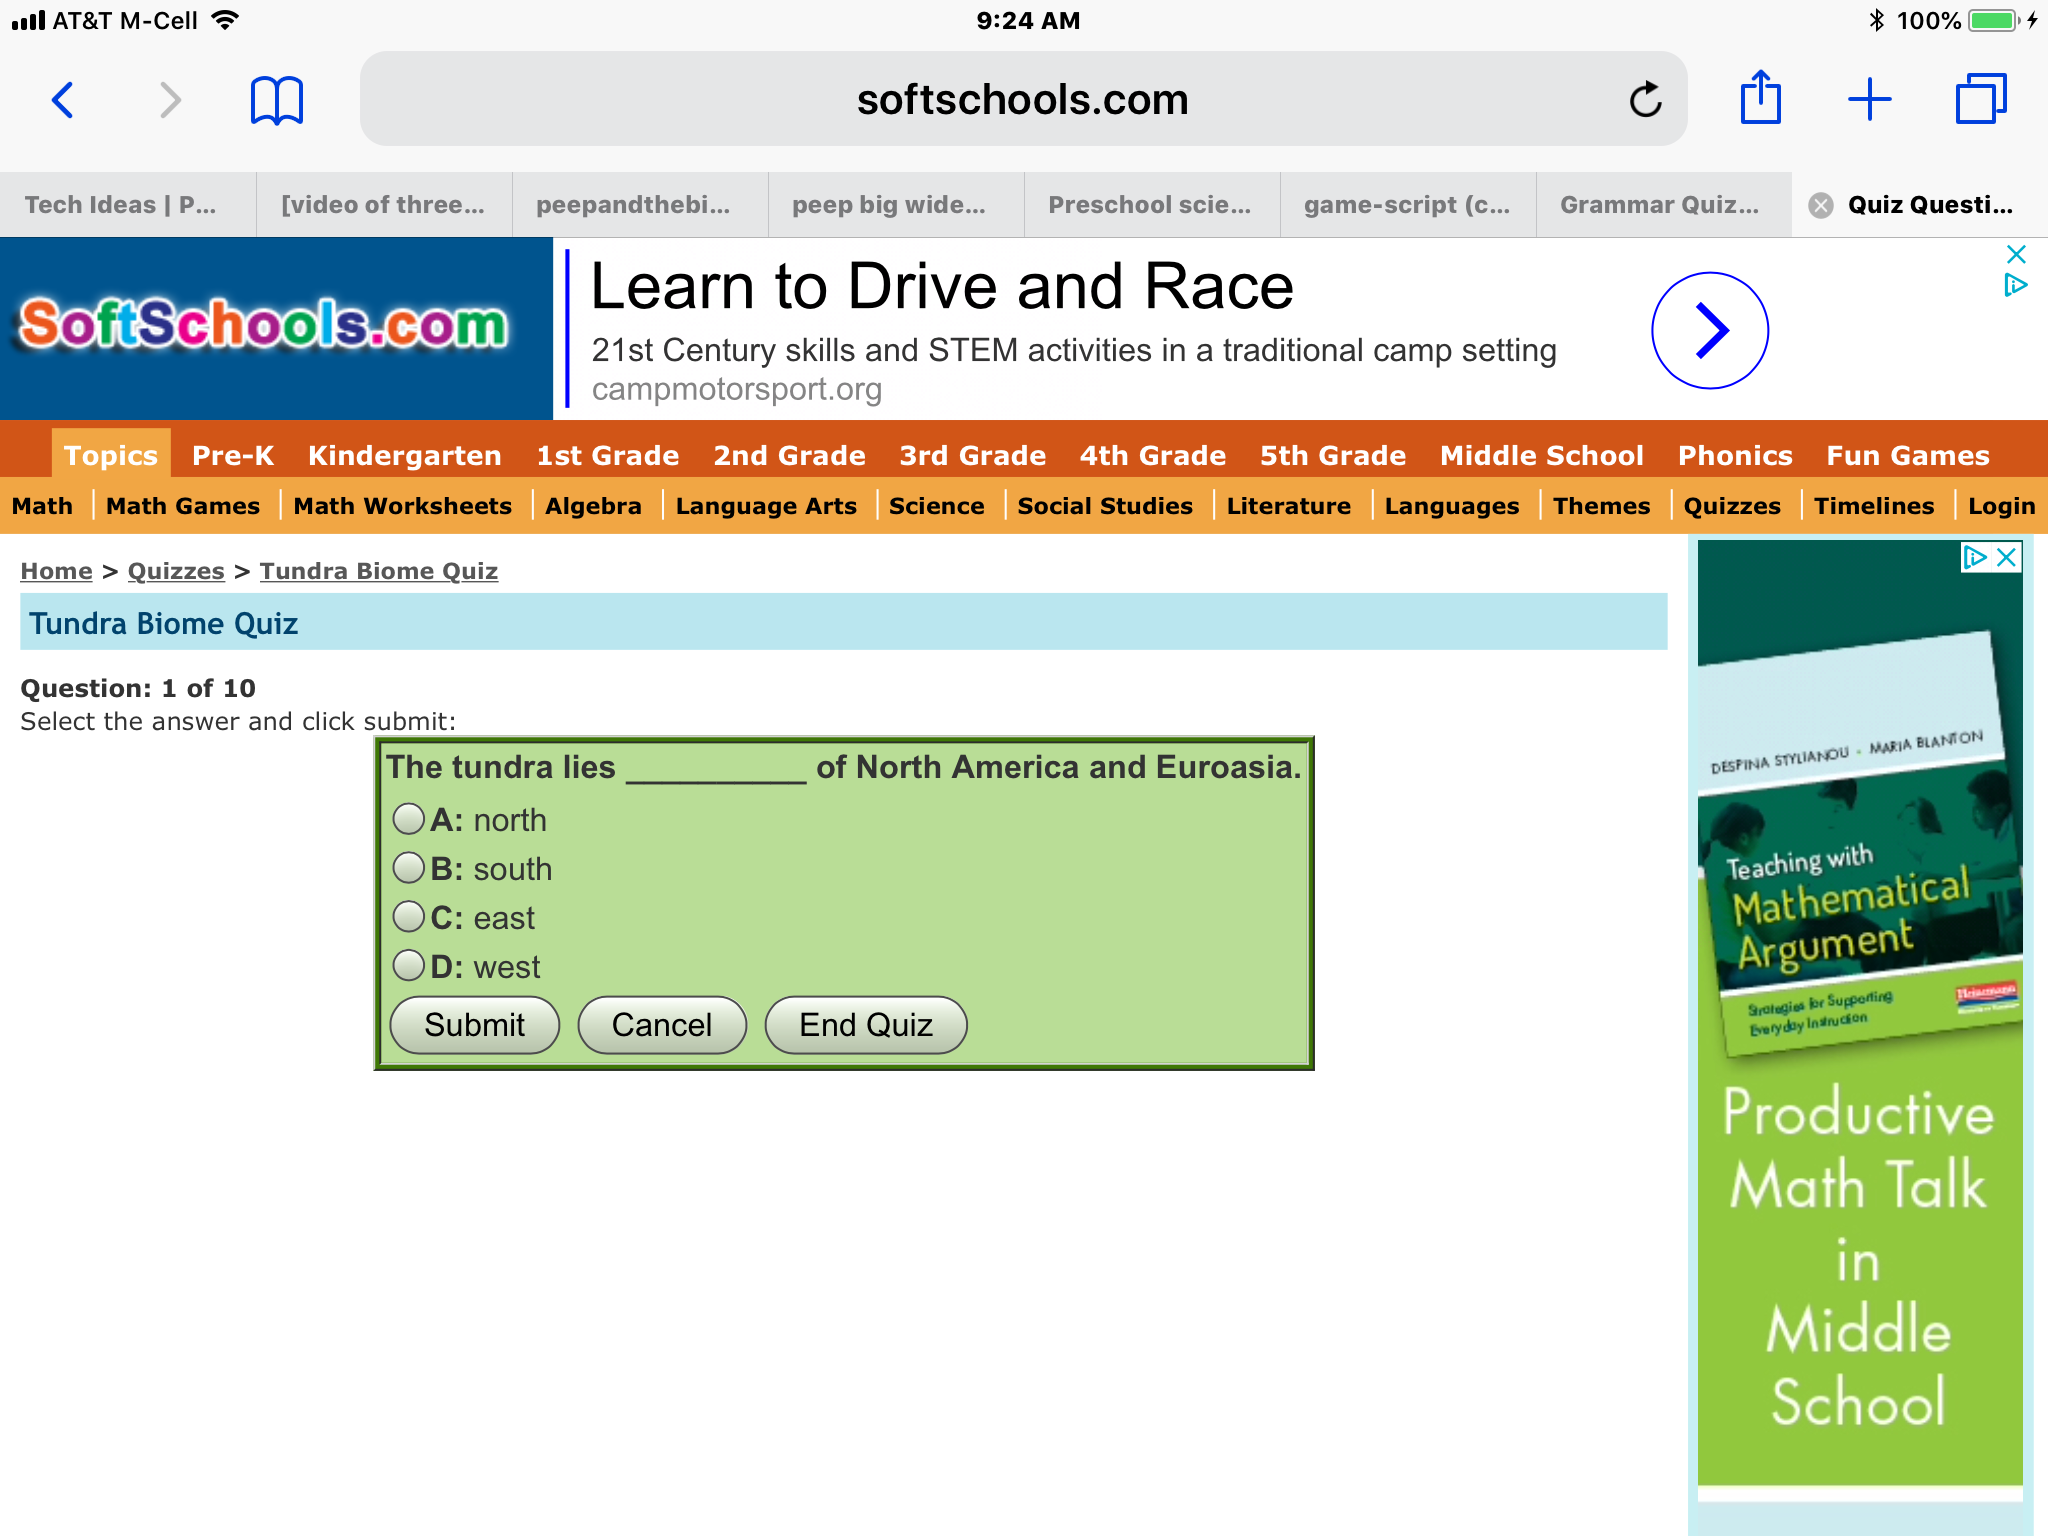 Softschools Free Online Games Worksheets And Quizzes Paths To Worksheet For Kids Computer Parts Matching Diagram Screenshot Of An Ipad Displaying The First Multiple Choice Question Biomes Quiz